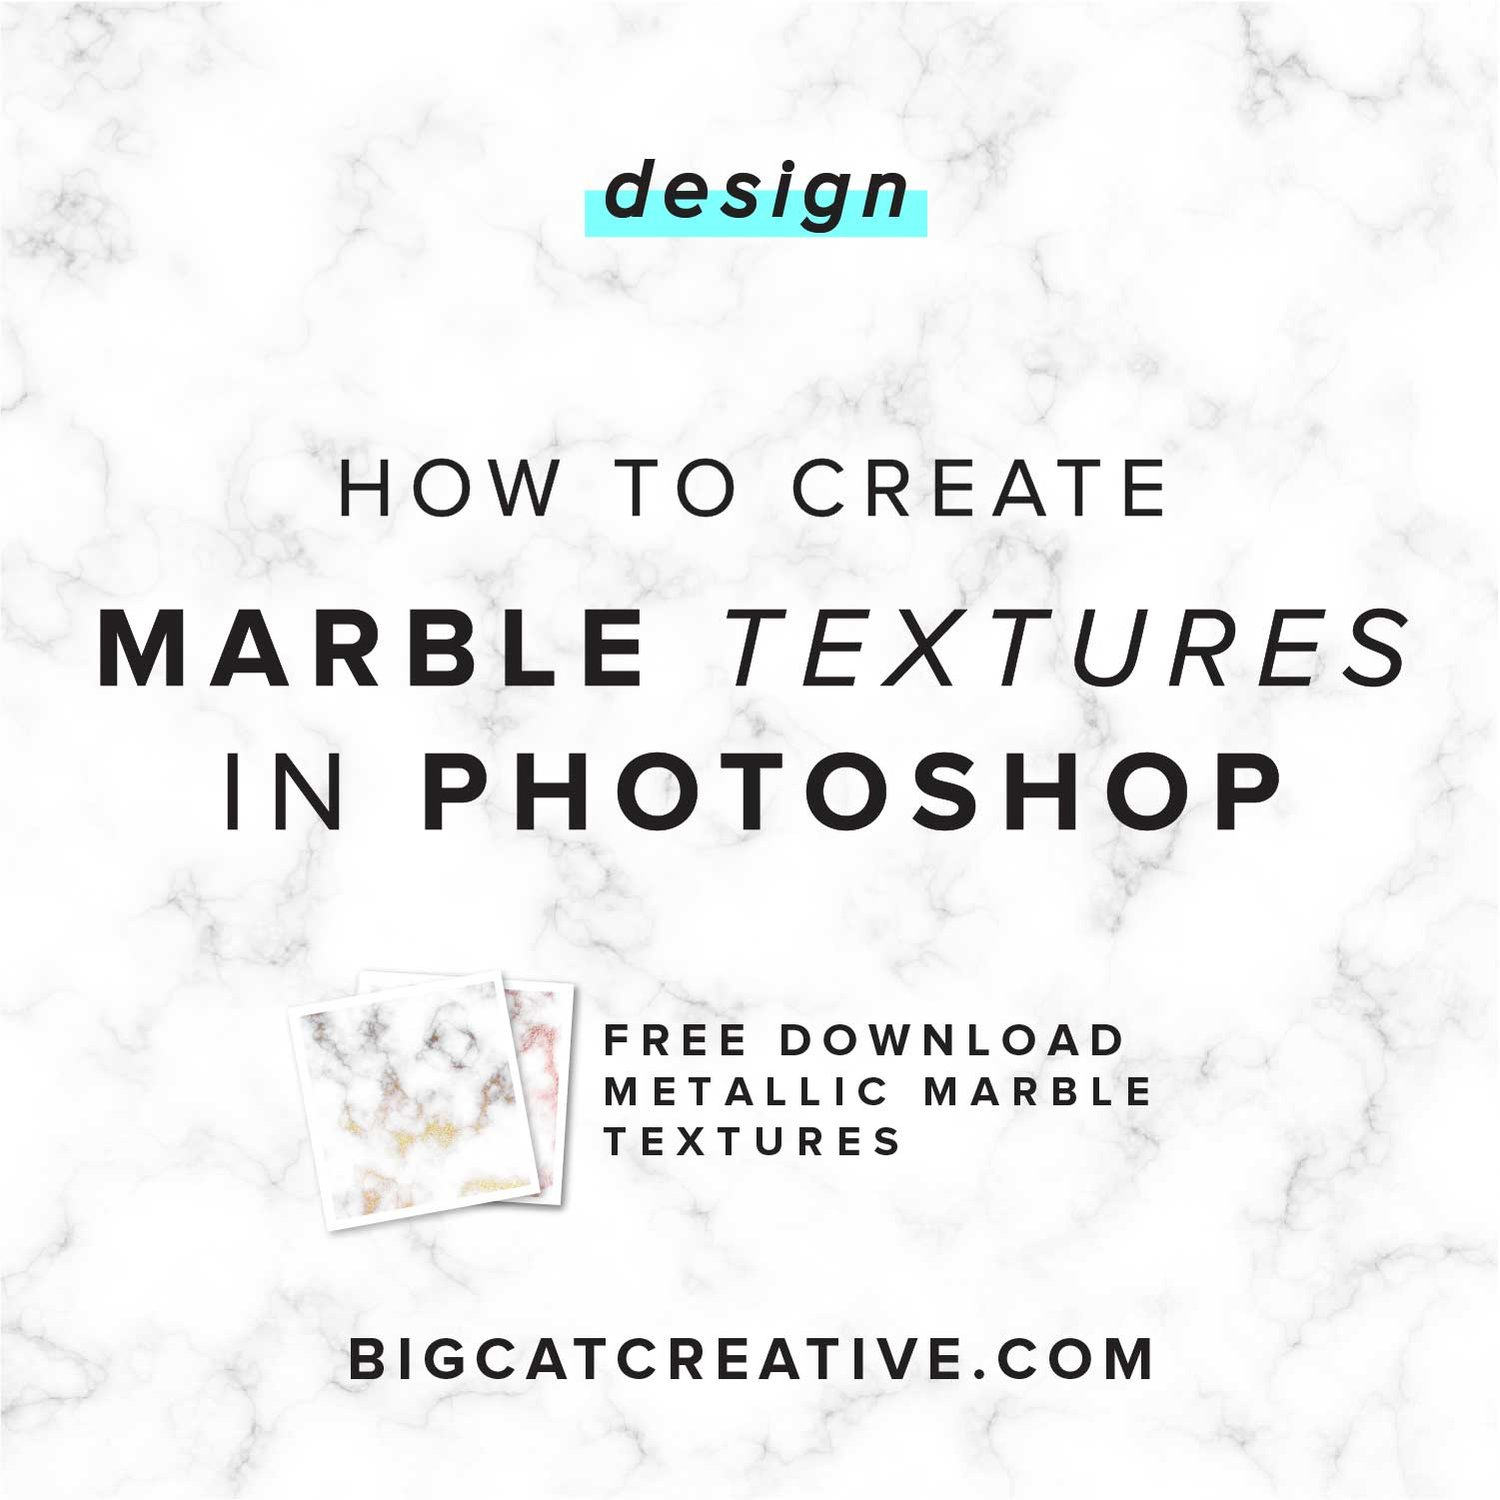 How to Create Marble Textures in Photoshop — Big Cat Creative